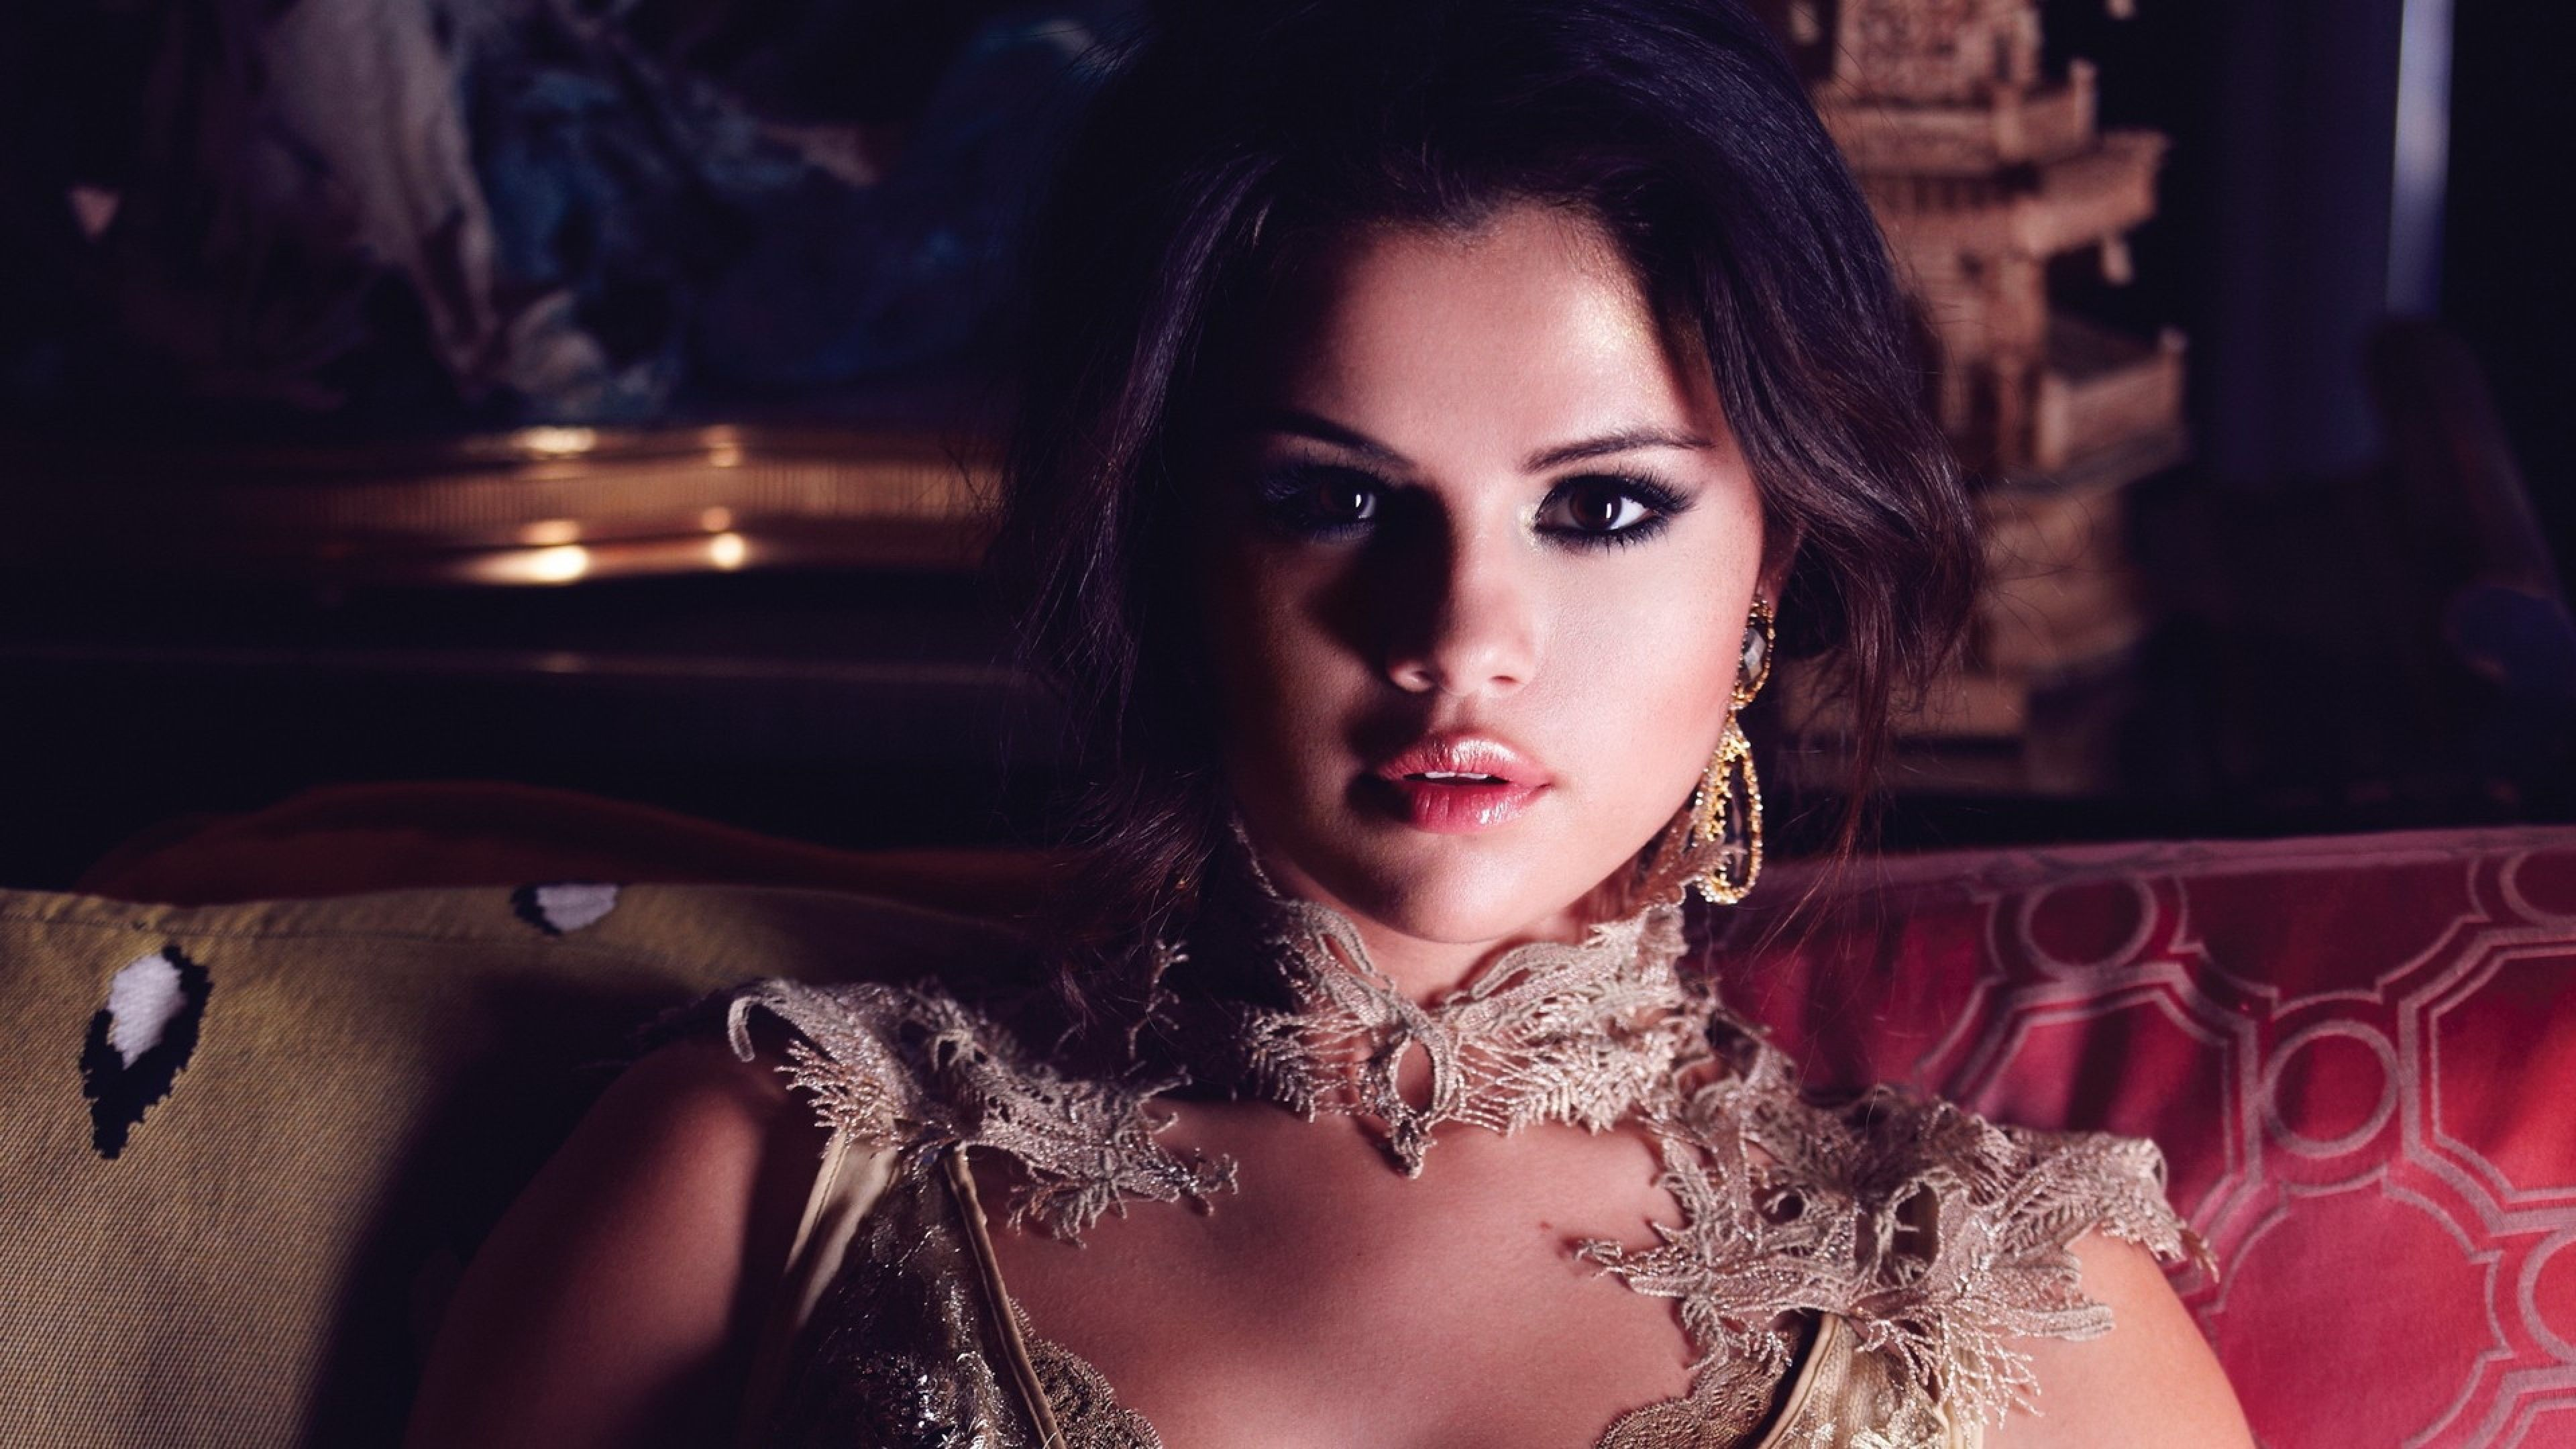 Selena Gomez Ultra HD 4K Wallpapers Hollywood Celebrity